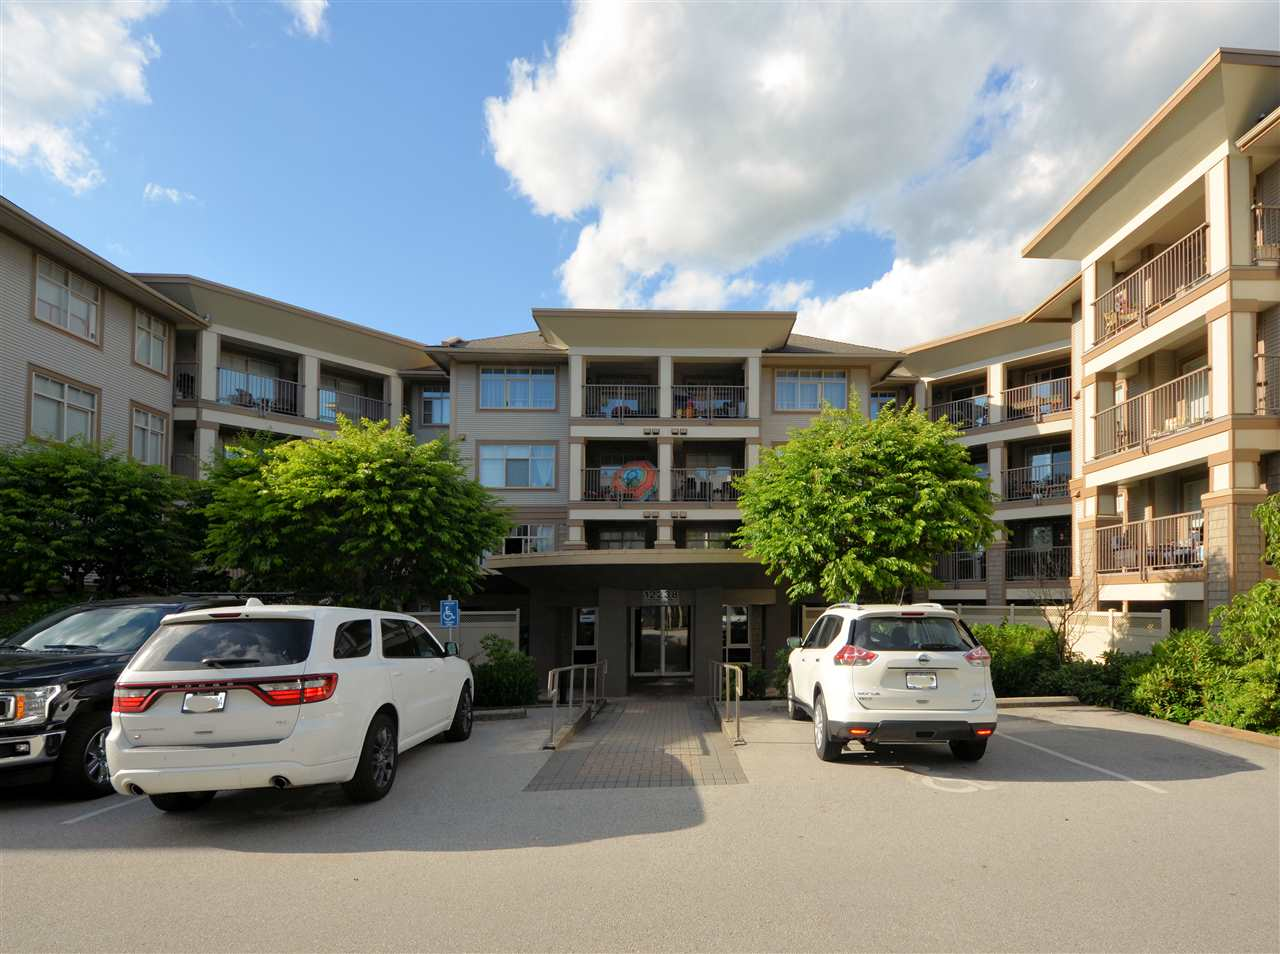 TOP FLOOR in URBANO! Steps on in to this UPGRADED OPEN FLOOR PLAN unit that boasts Vaulted Ceilings, Custom Modern Cabinetry, PREMIUM Laminate Flooring, Designer Paint, PRIVATE BALCONY with Privacy Fence, Plenty of natural light, Spacious Bedroom, plus so much more! One of the best locations in the building & walking distance to transit, shopping, parks & everything else the area has to offer! RENTALS ALLOWED & Pet Friendly! Come check out this one of a kind GEM & get it before it's gone!